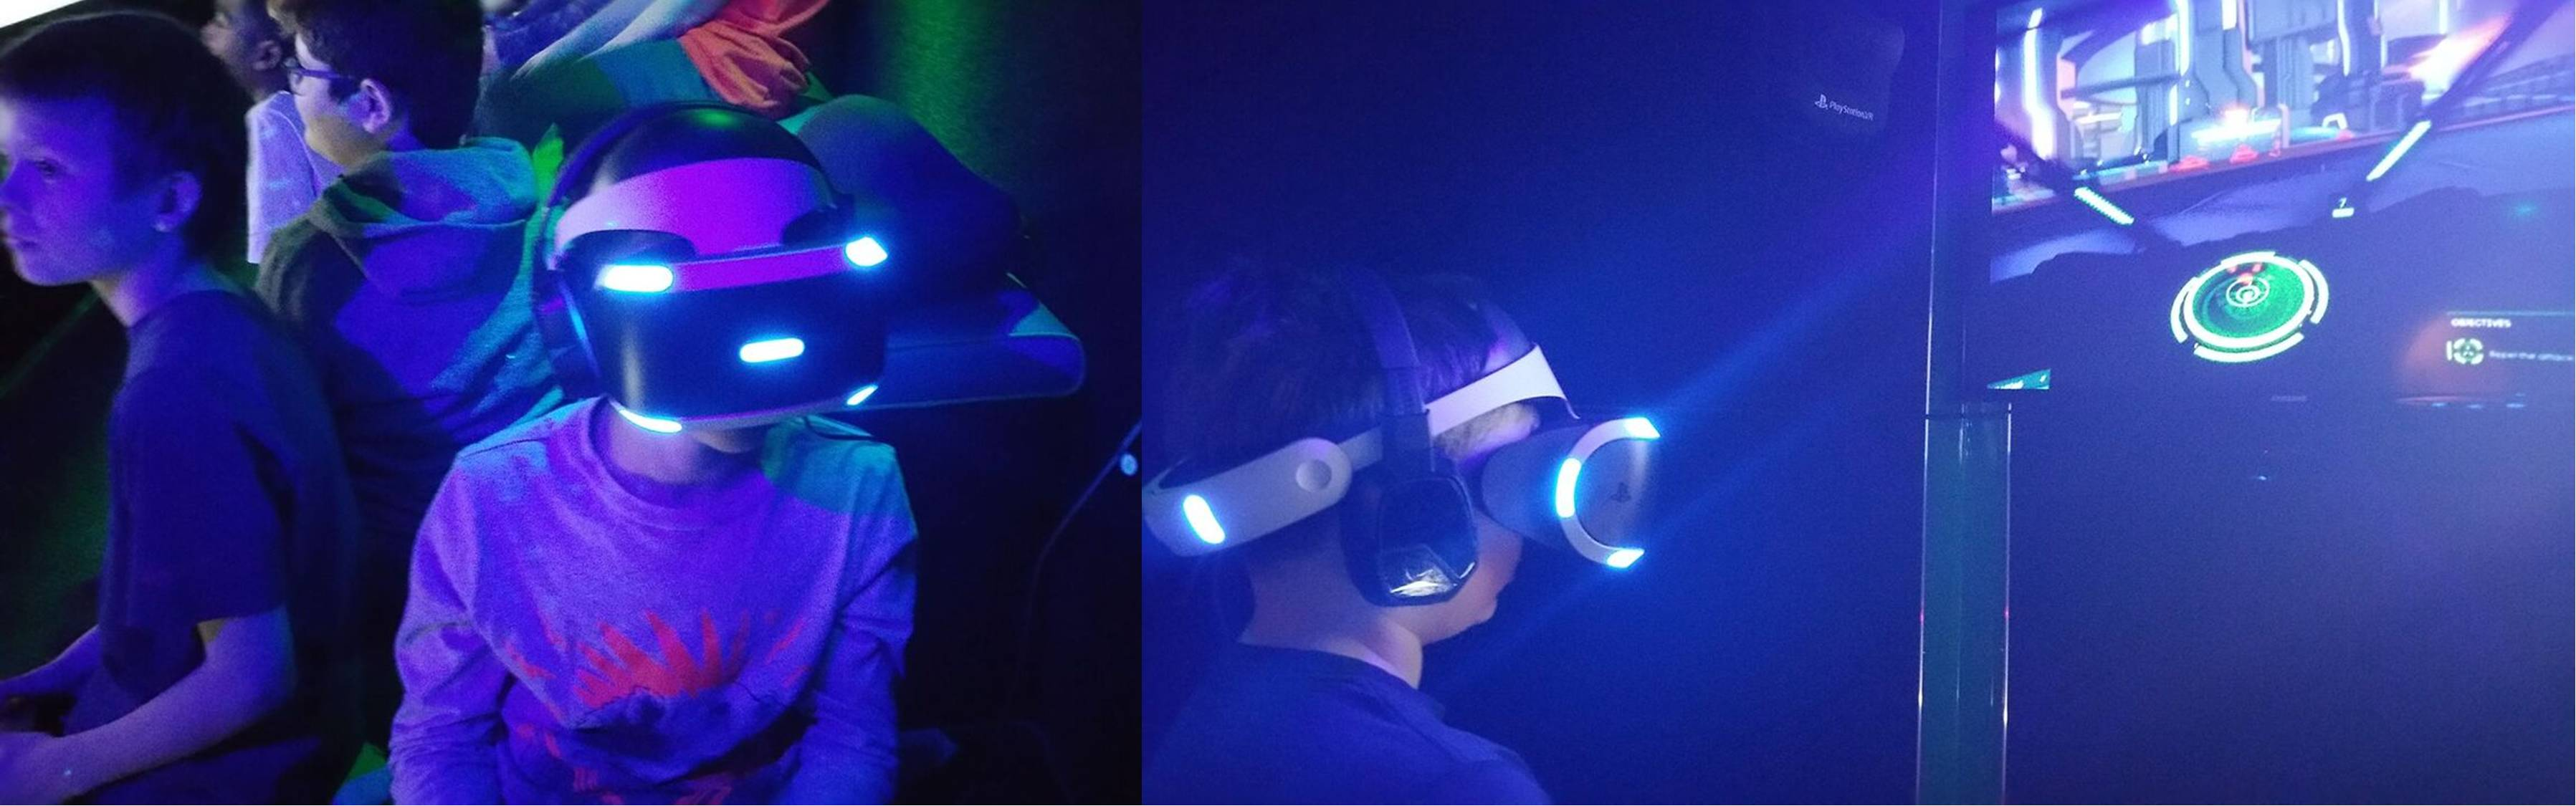 virtual-reality-gaming-in-chicago-illinois